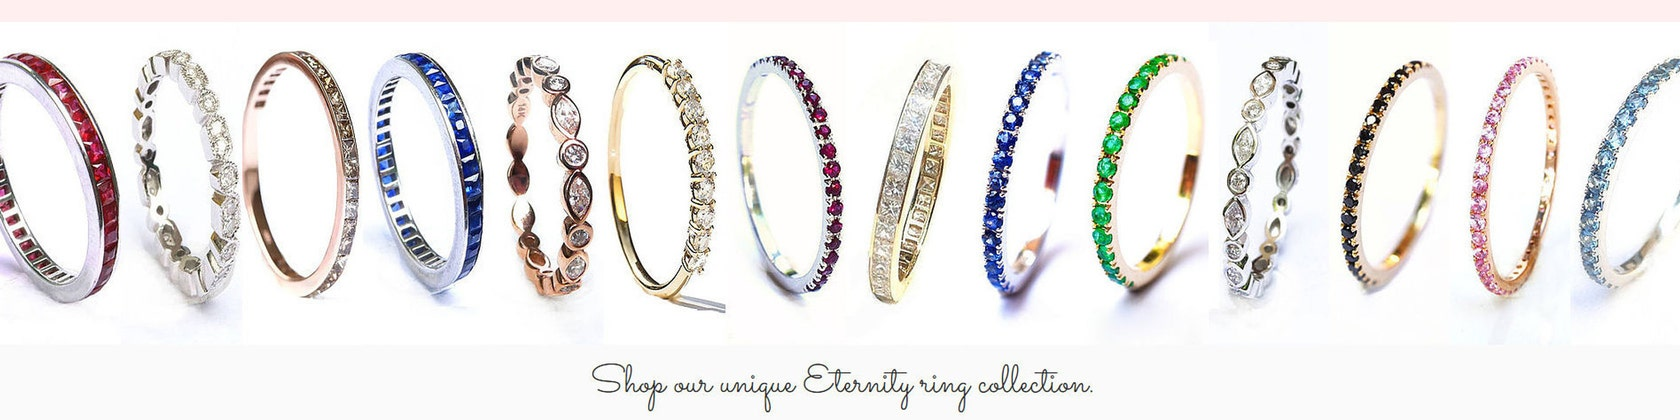 c367b2ff36d12 Fine Gold and Gemstone Jewelry . Diamond Eternity Rings by Polamai